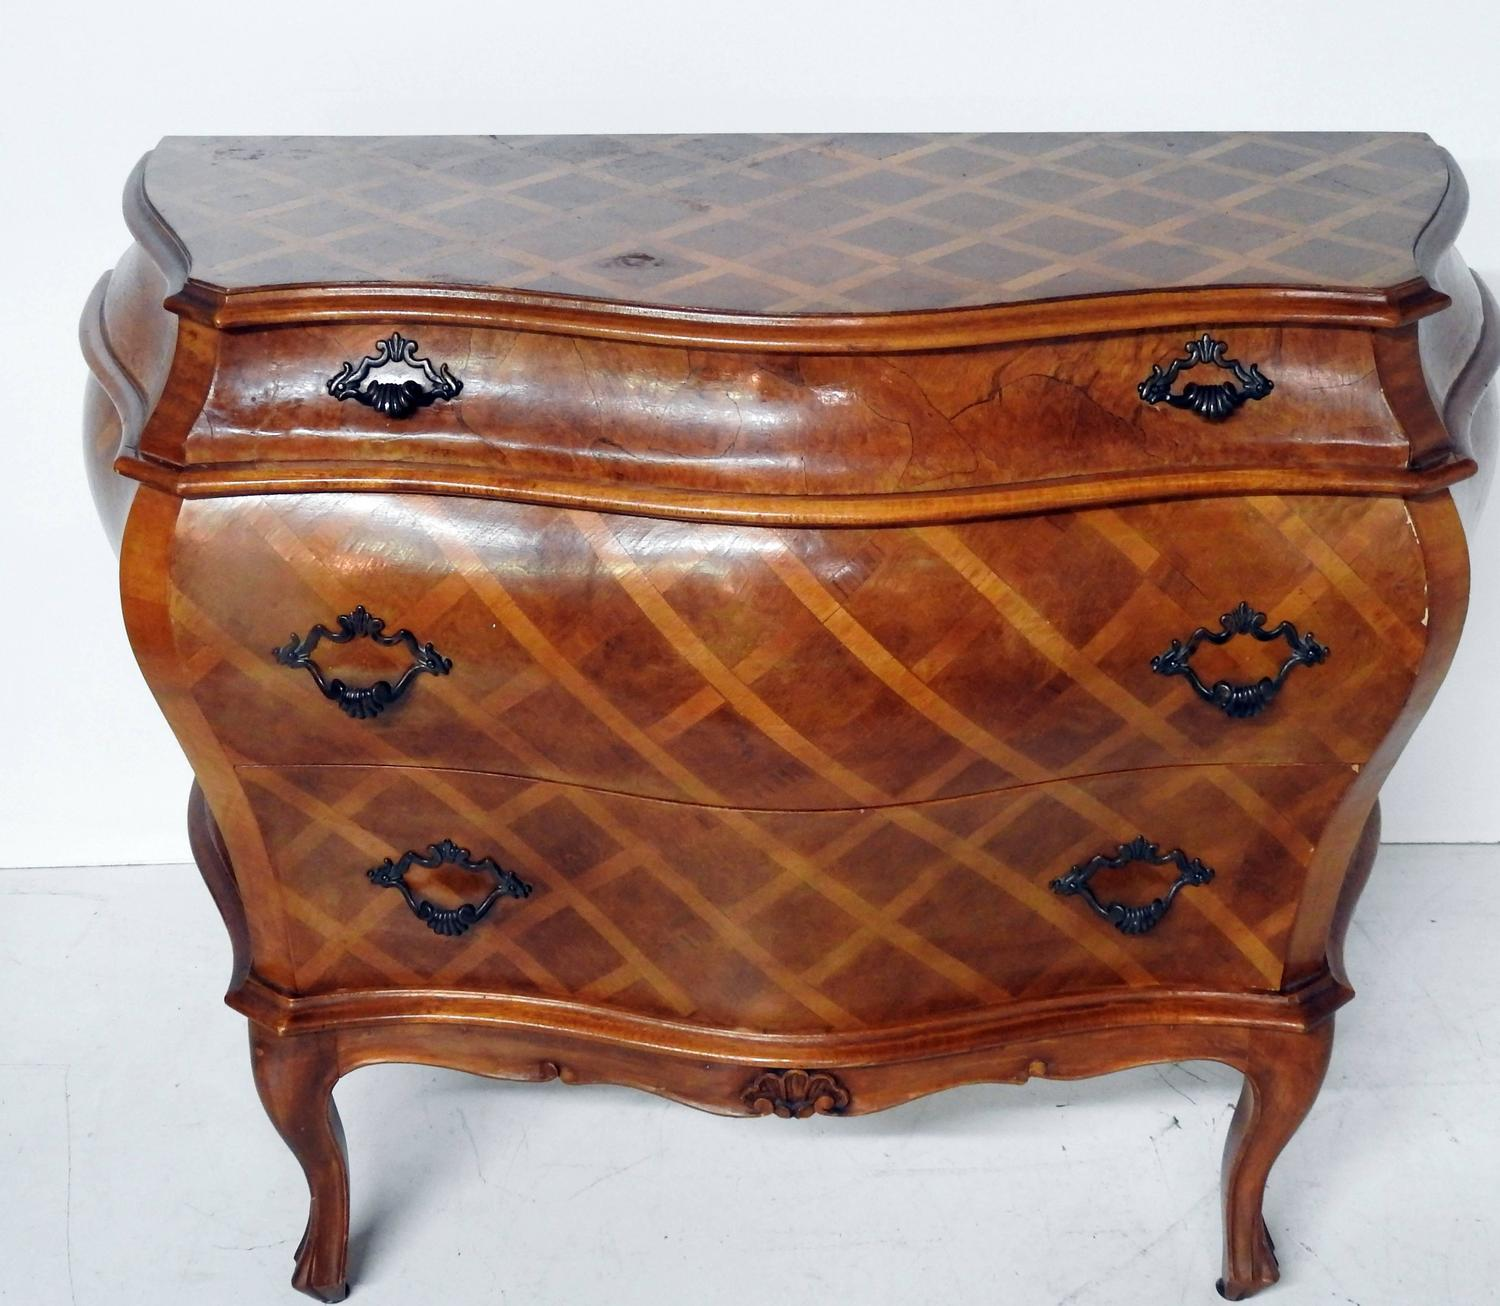 Italian olive wood parquetry commode at 1stdibs for Z furniture philadelphia